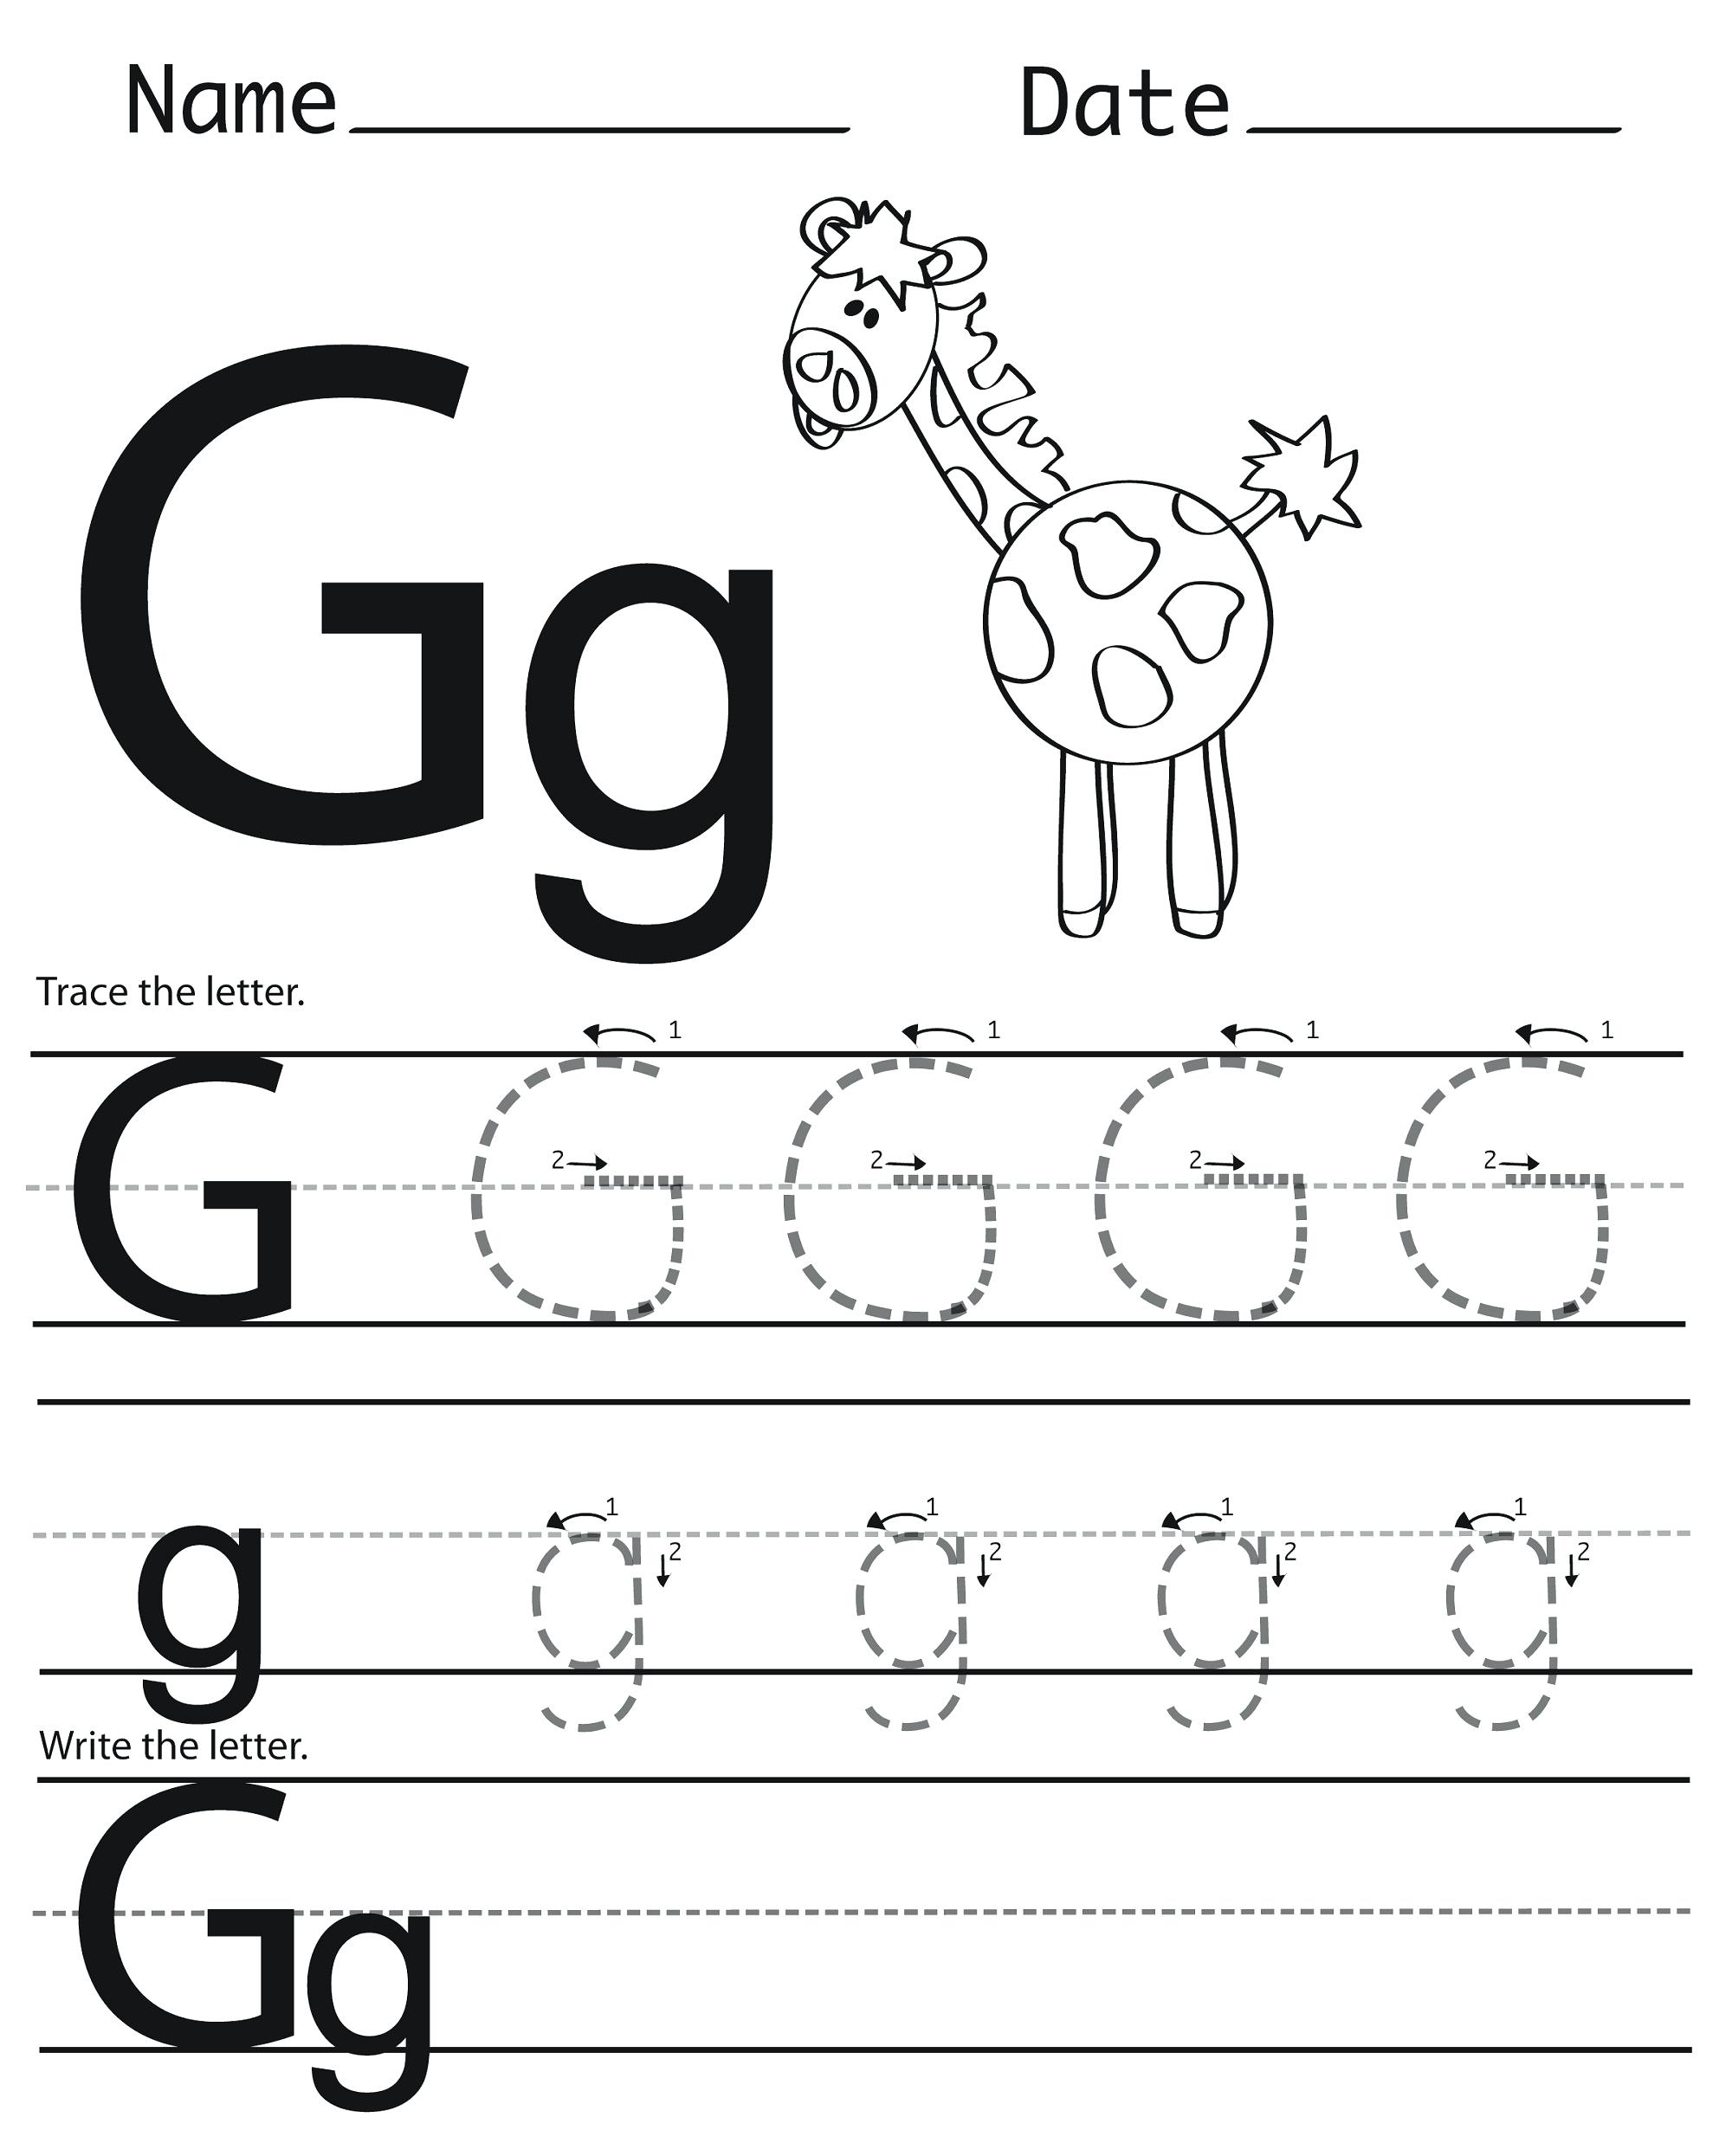 Trace Letter G Letter G Activities Trace Letter Generator with Letter G Worksheets Twisty Noodle